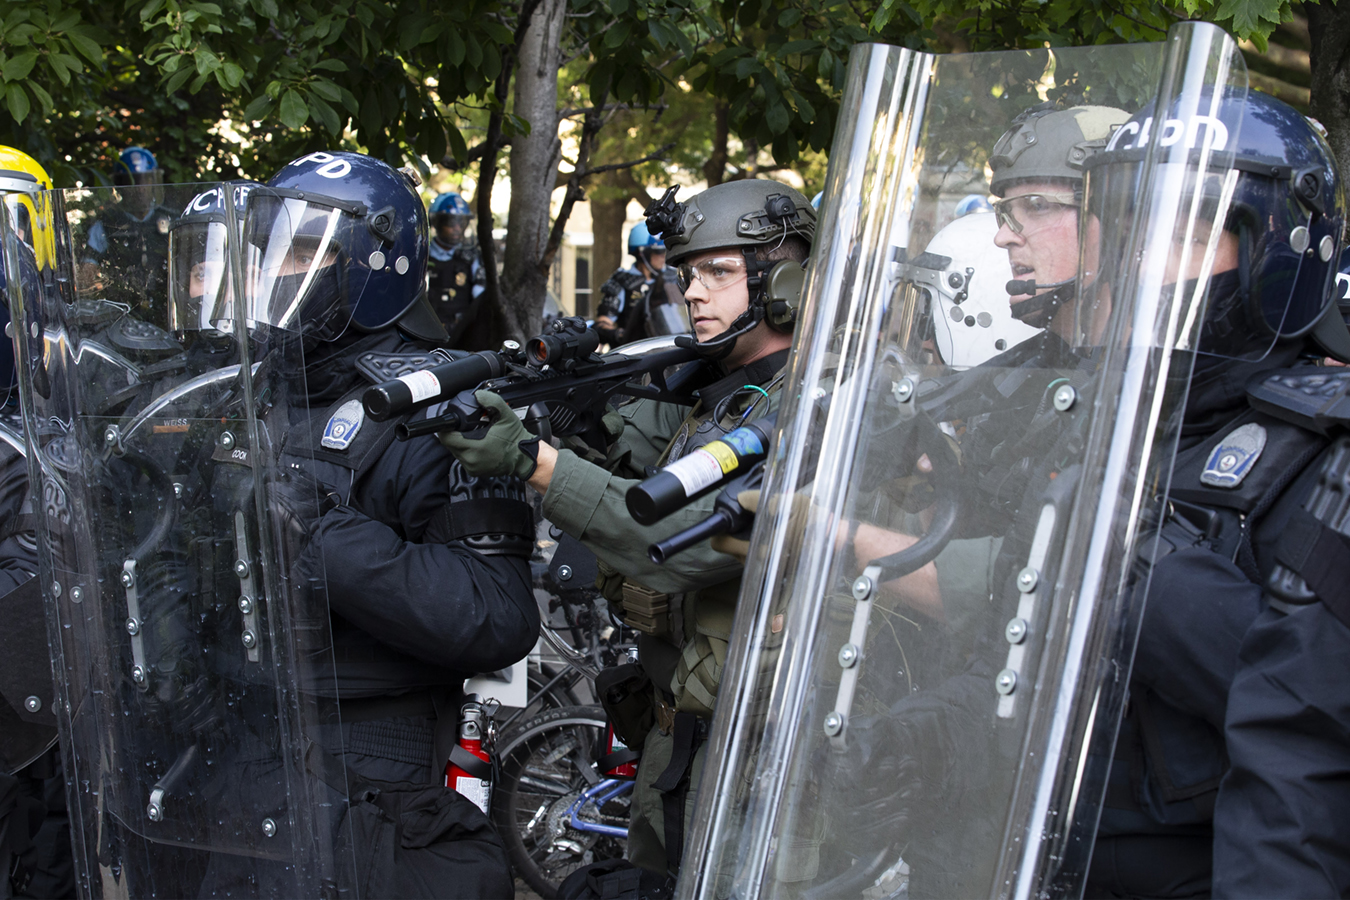 Police Using Rubber Bullets On Protesters That Can Kill Blind Or Maim For Life Kaiser Health News